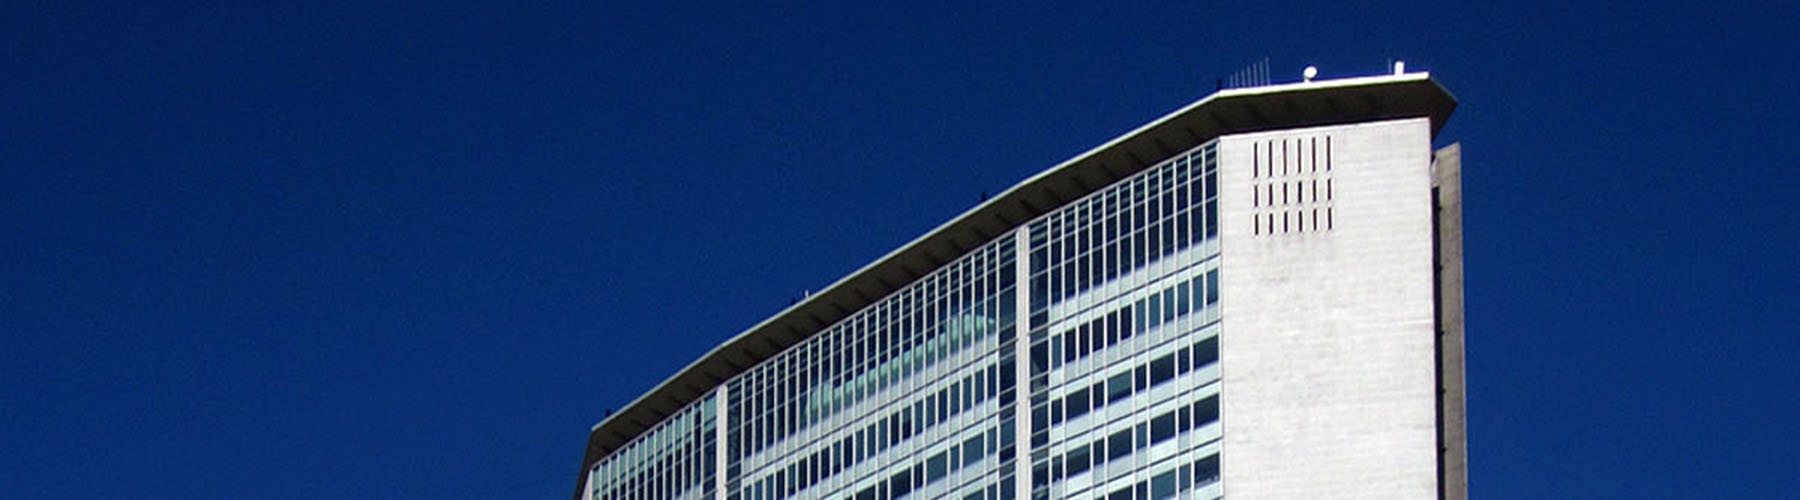 Milan – Hostels close to Pirelli Tower. Maps for Milan, Photos and Reviews for each hostel in Milan.